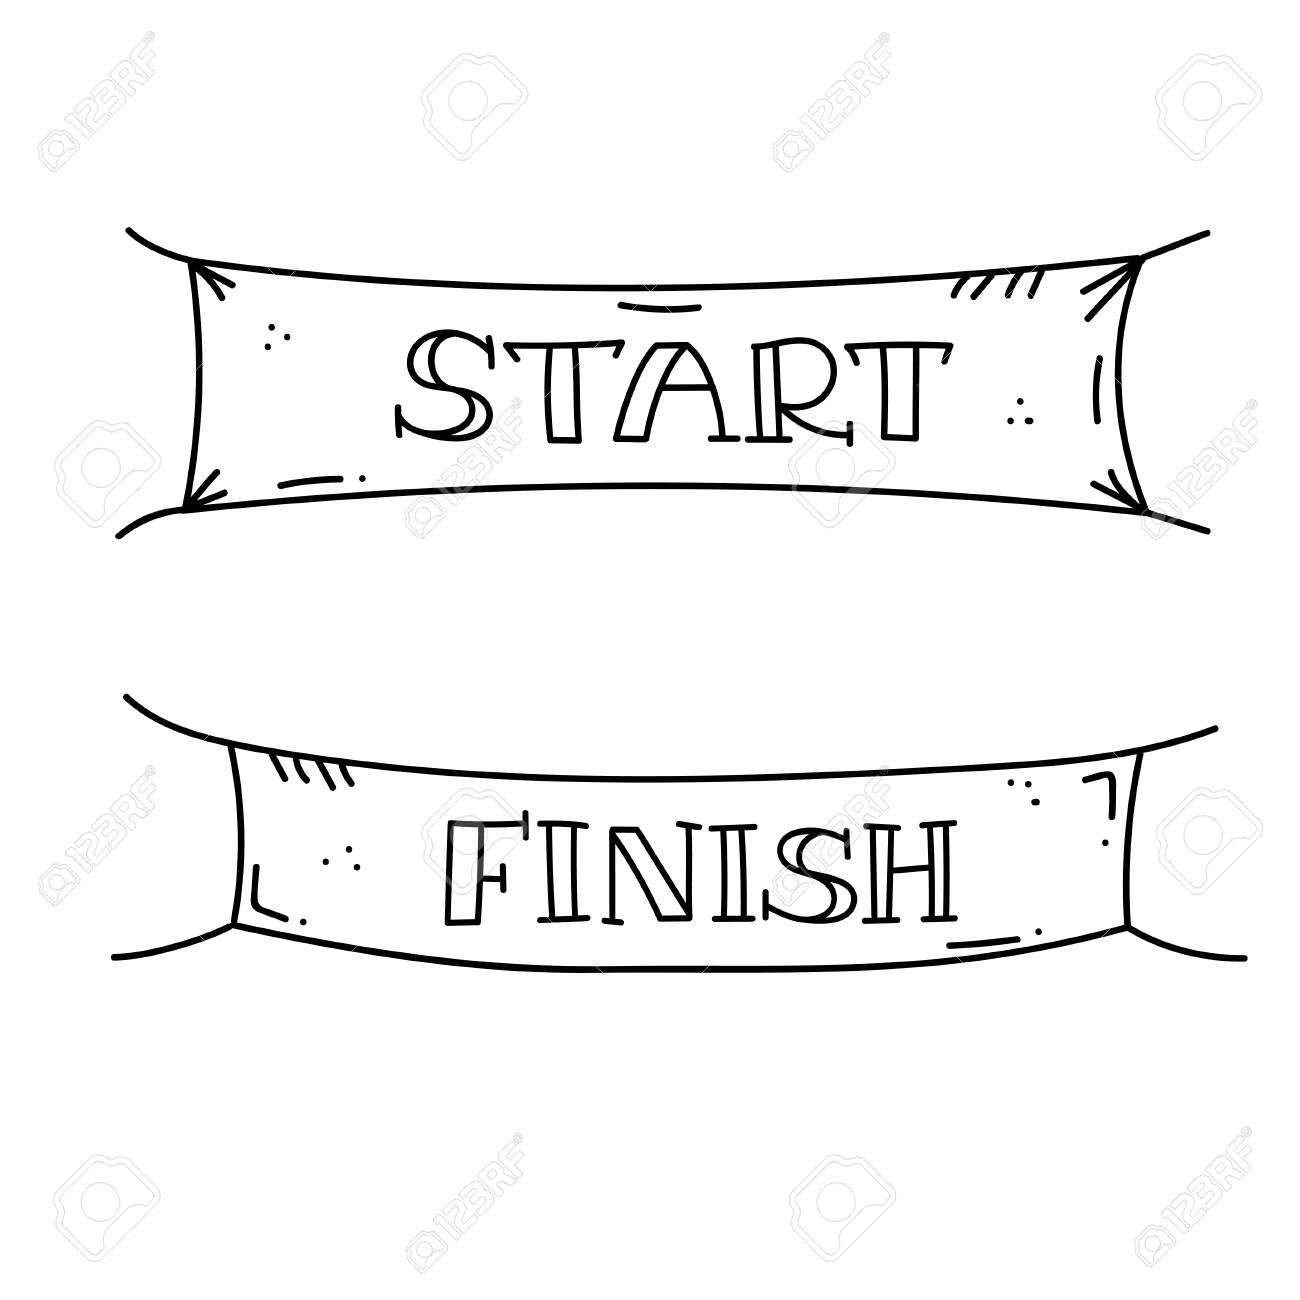 Vector illustration of start and finish line banners, streamers, flags for outdoor sport event - competition race, run marathon. Isolated doodle cartoon illustration. - 112870899